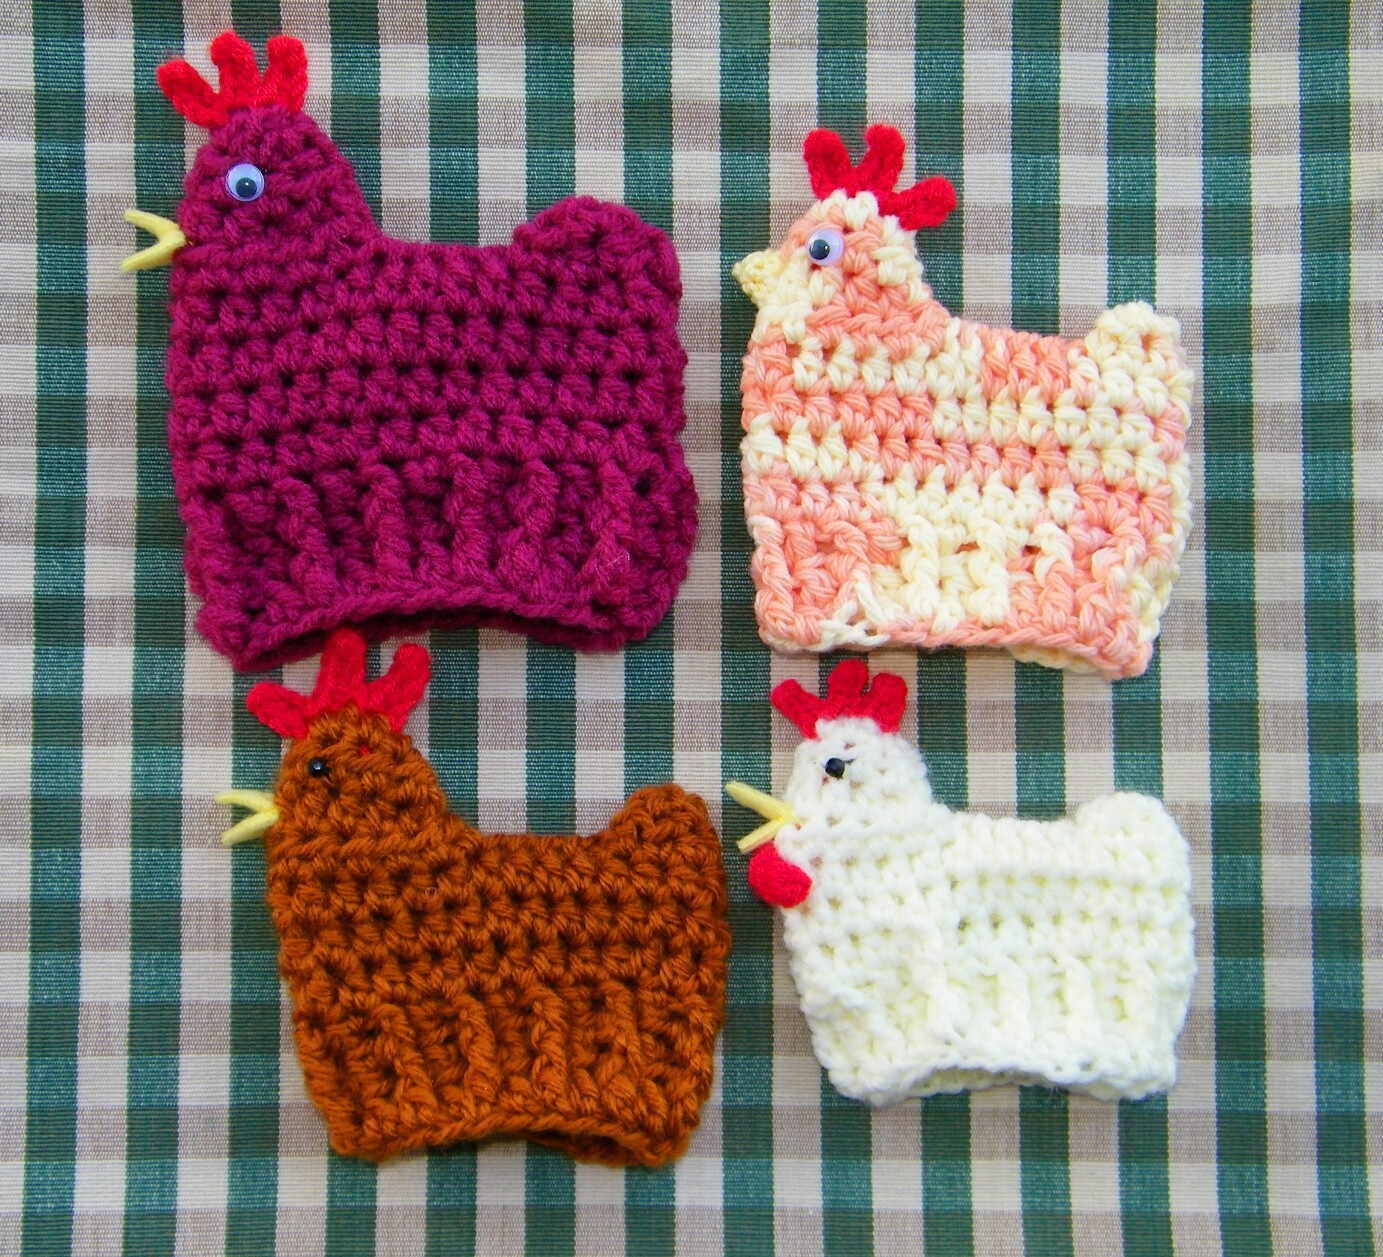 Crochet Easter Patterns Inspirational Delights Gems Crocheted Chicken and Duck Egg Cozies for Of Charming 45 Pics Crochet Easter Patterns